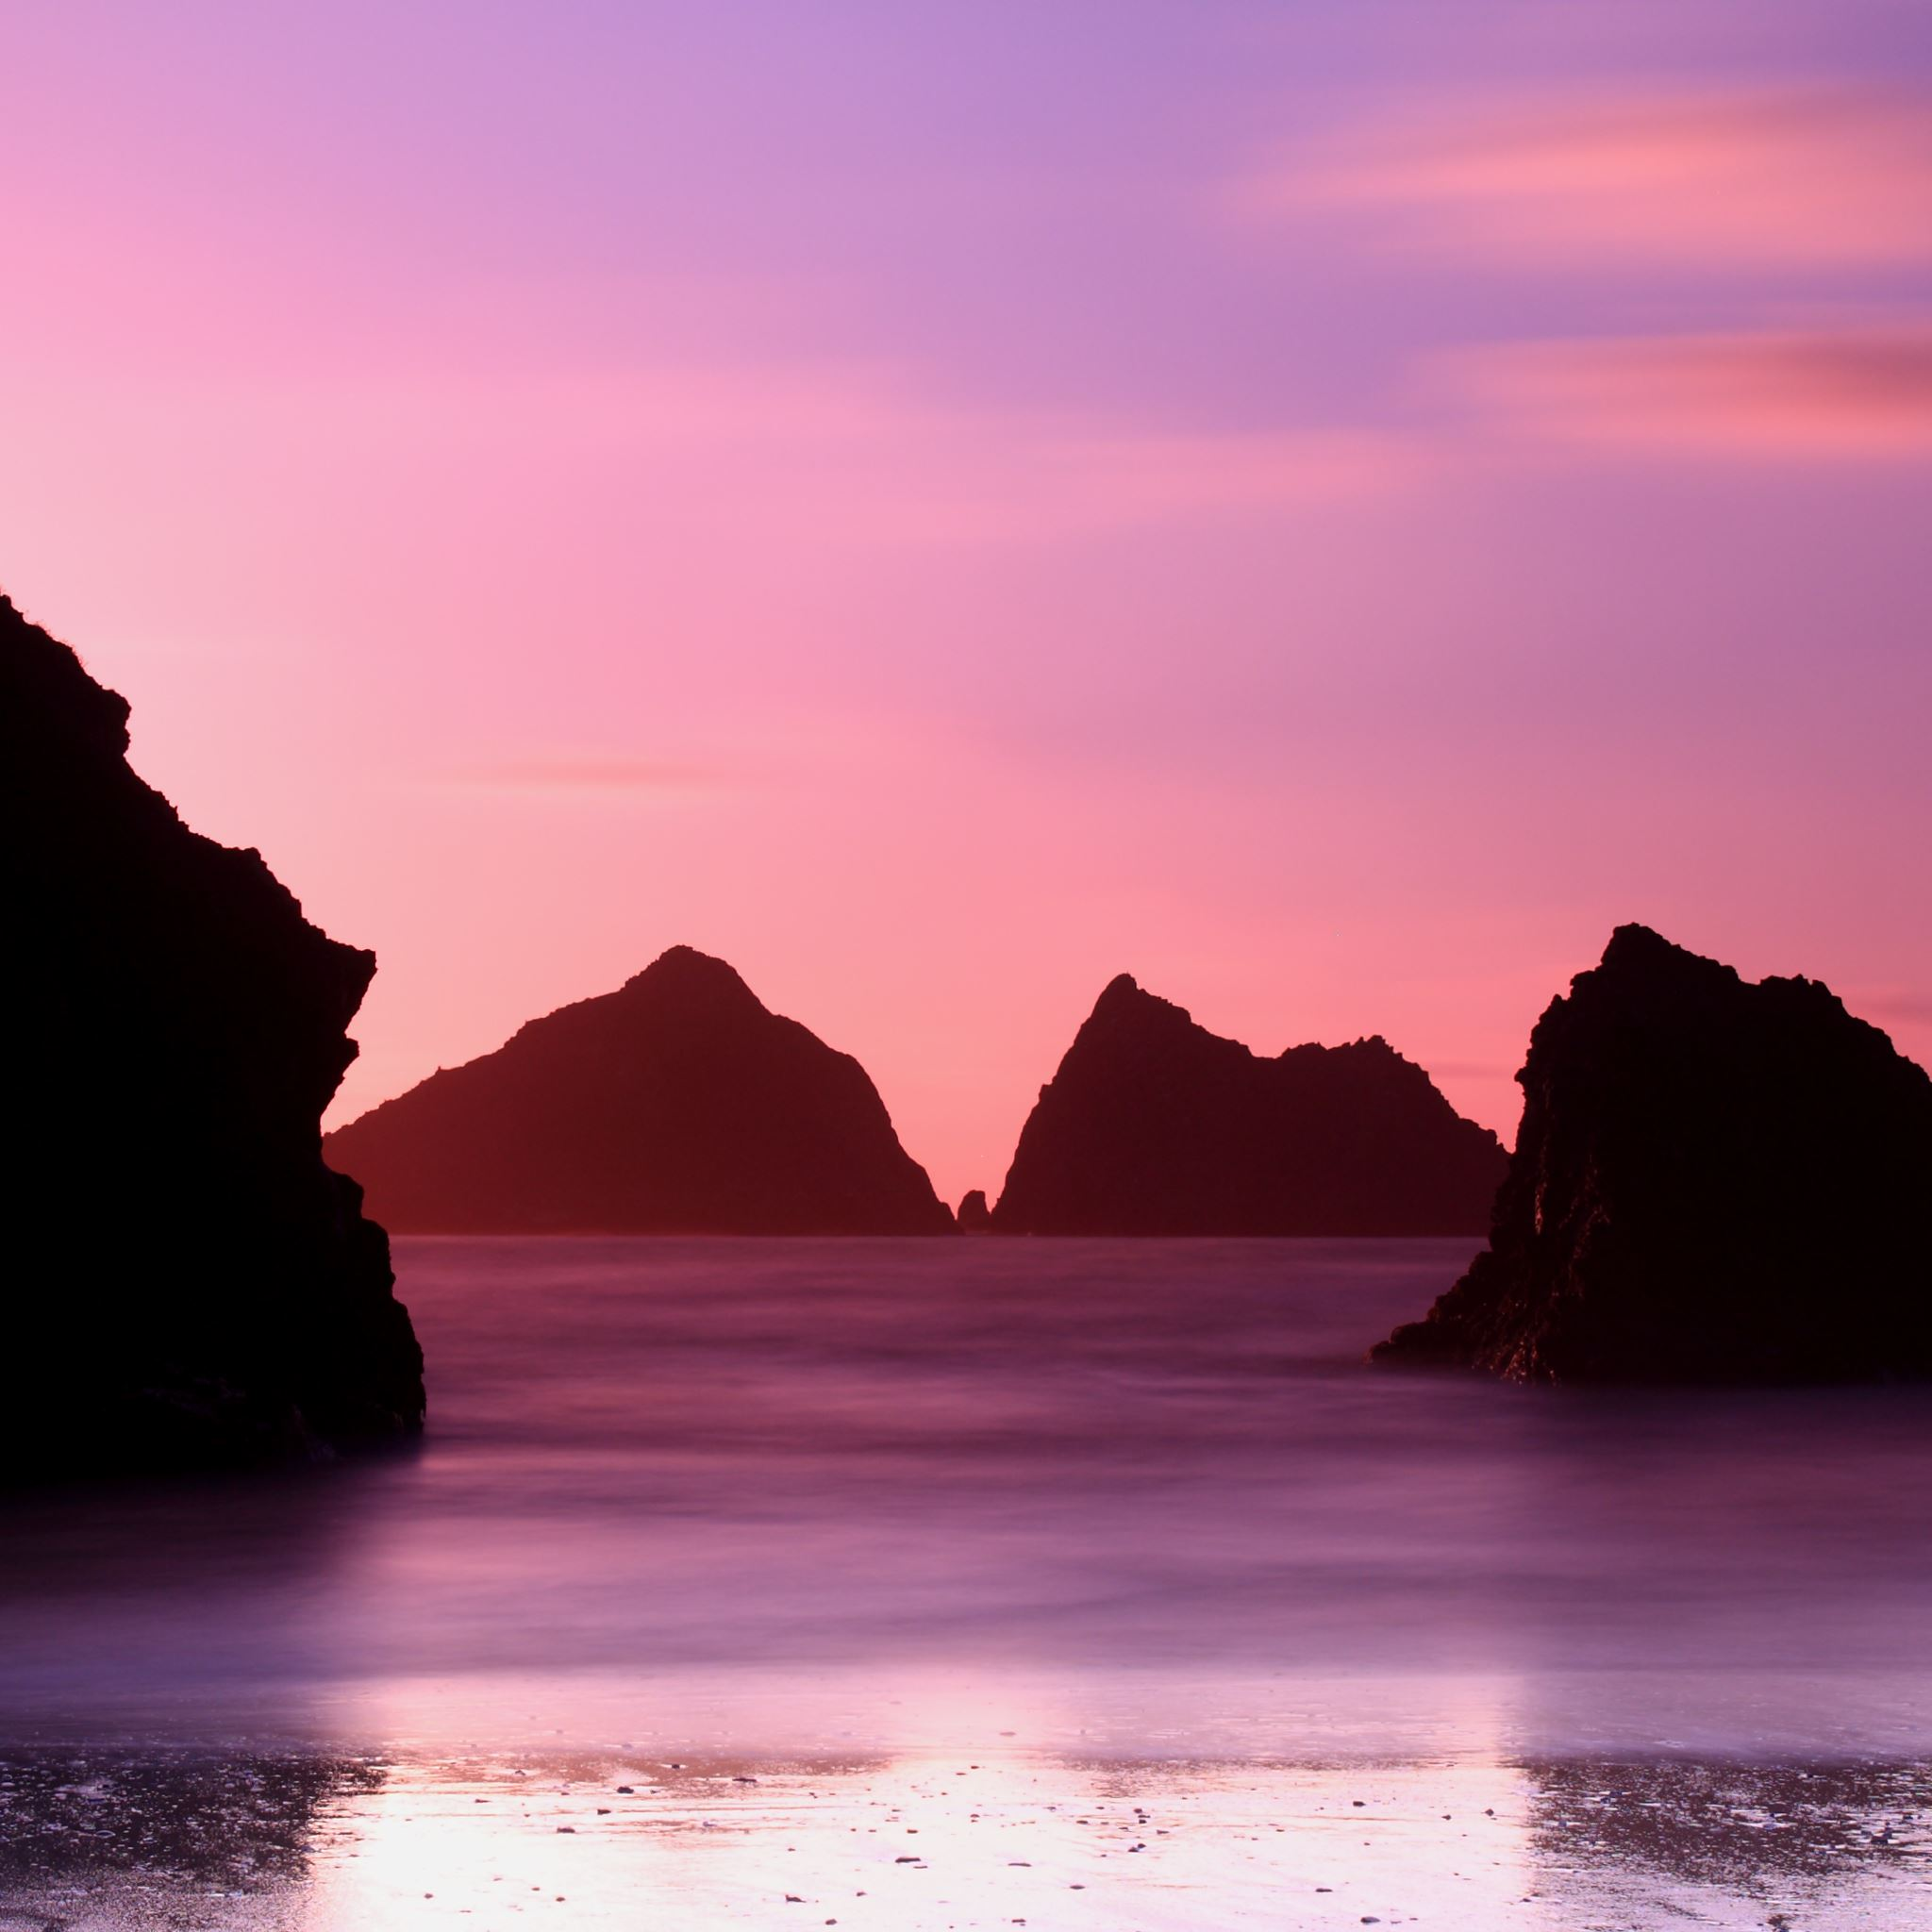 Holywell Bay iPad Air wallpaper